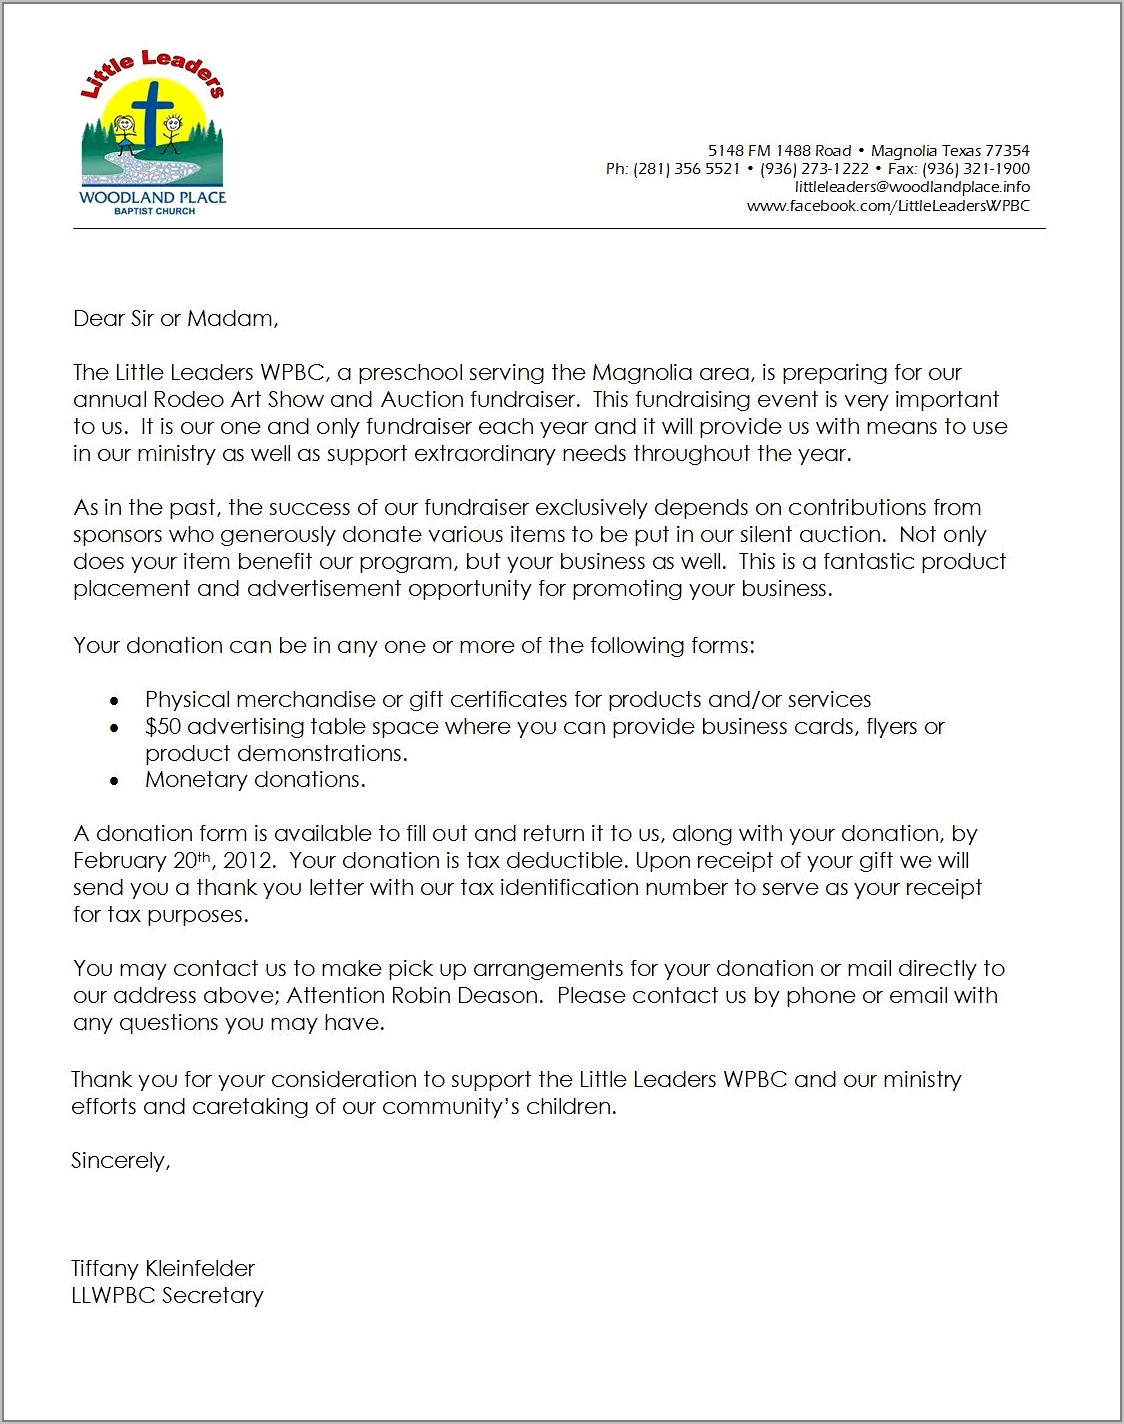 Fundraising Request For Donation Letter Template